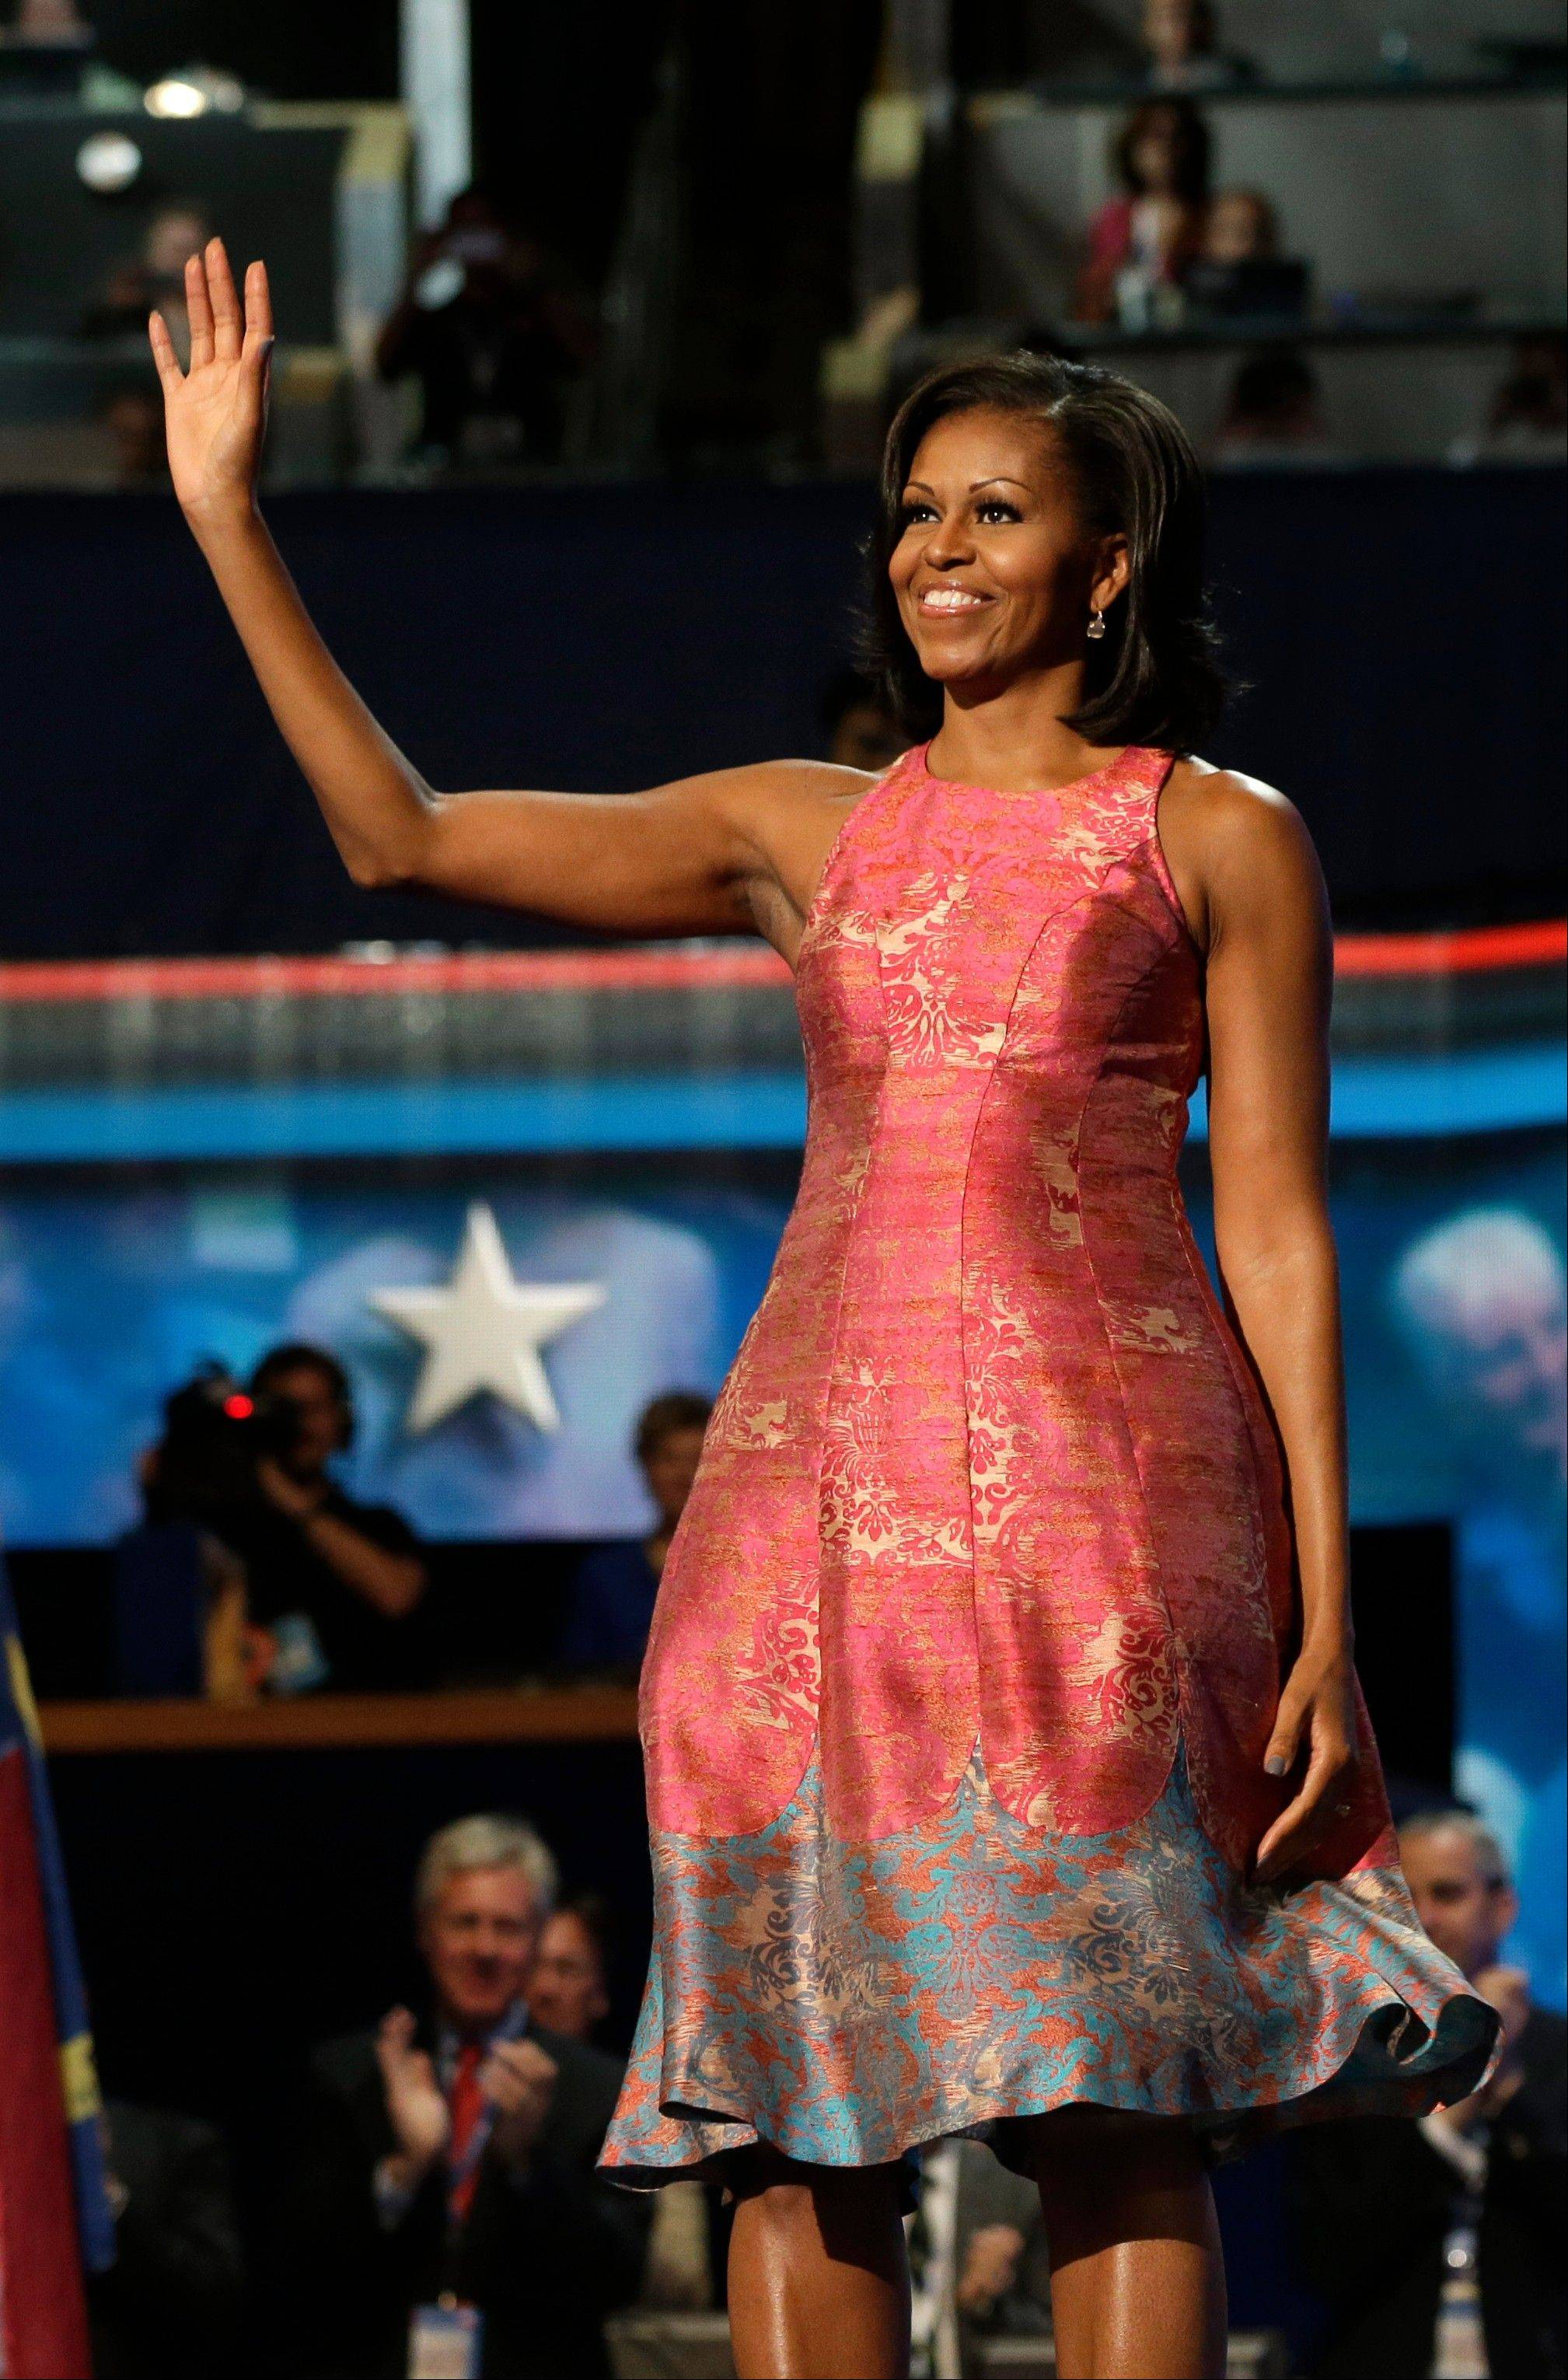 The dress first lady Michelle Obama wore for her address to the Democratic convention Tuesday night has drawn praise.